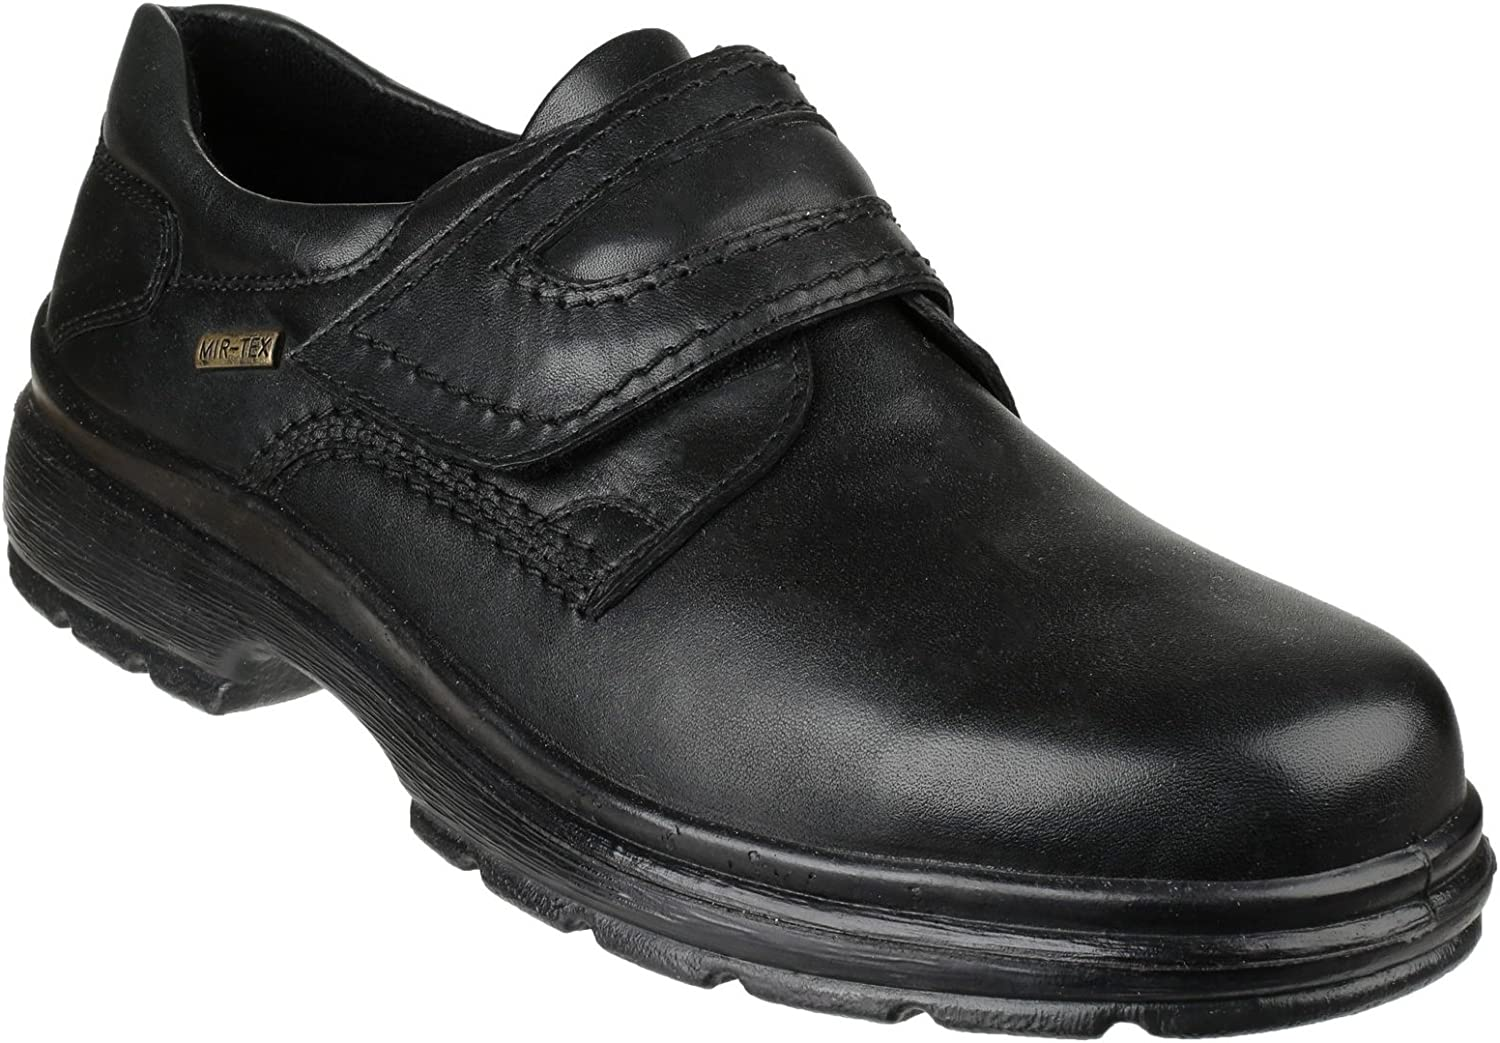 Cotswold Mens Birdlip Waterproof Leather Touch Fastening Formal shoes